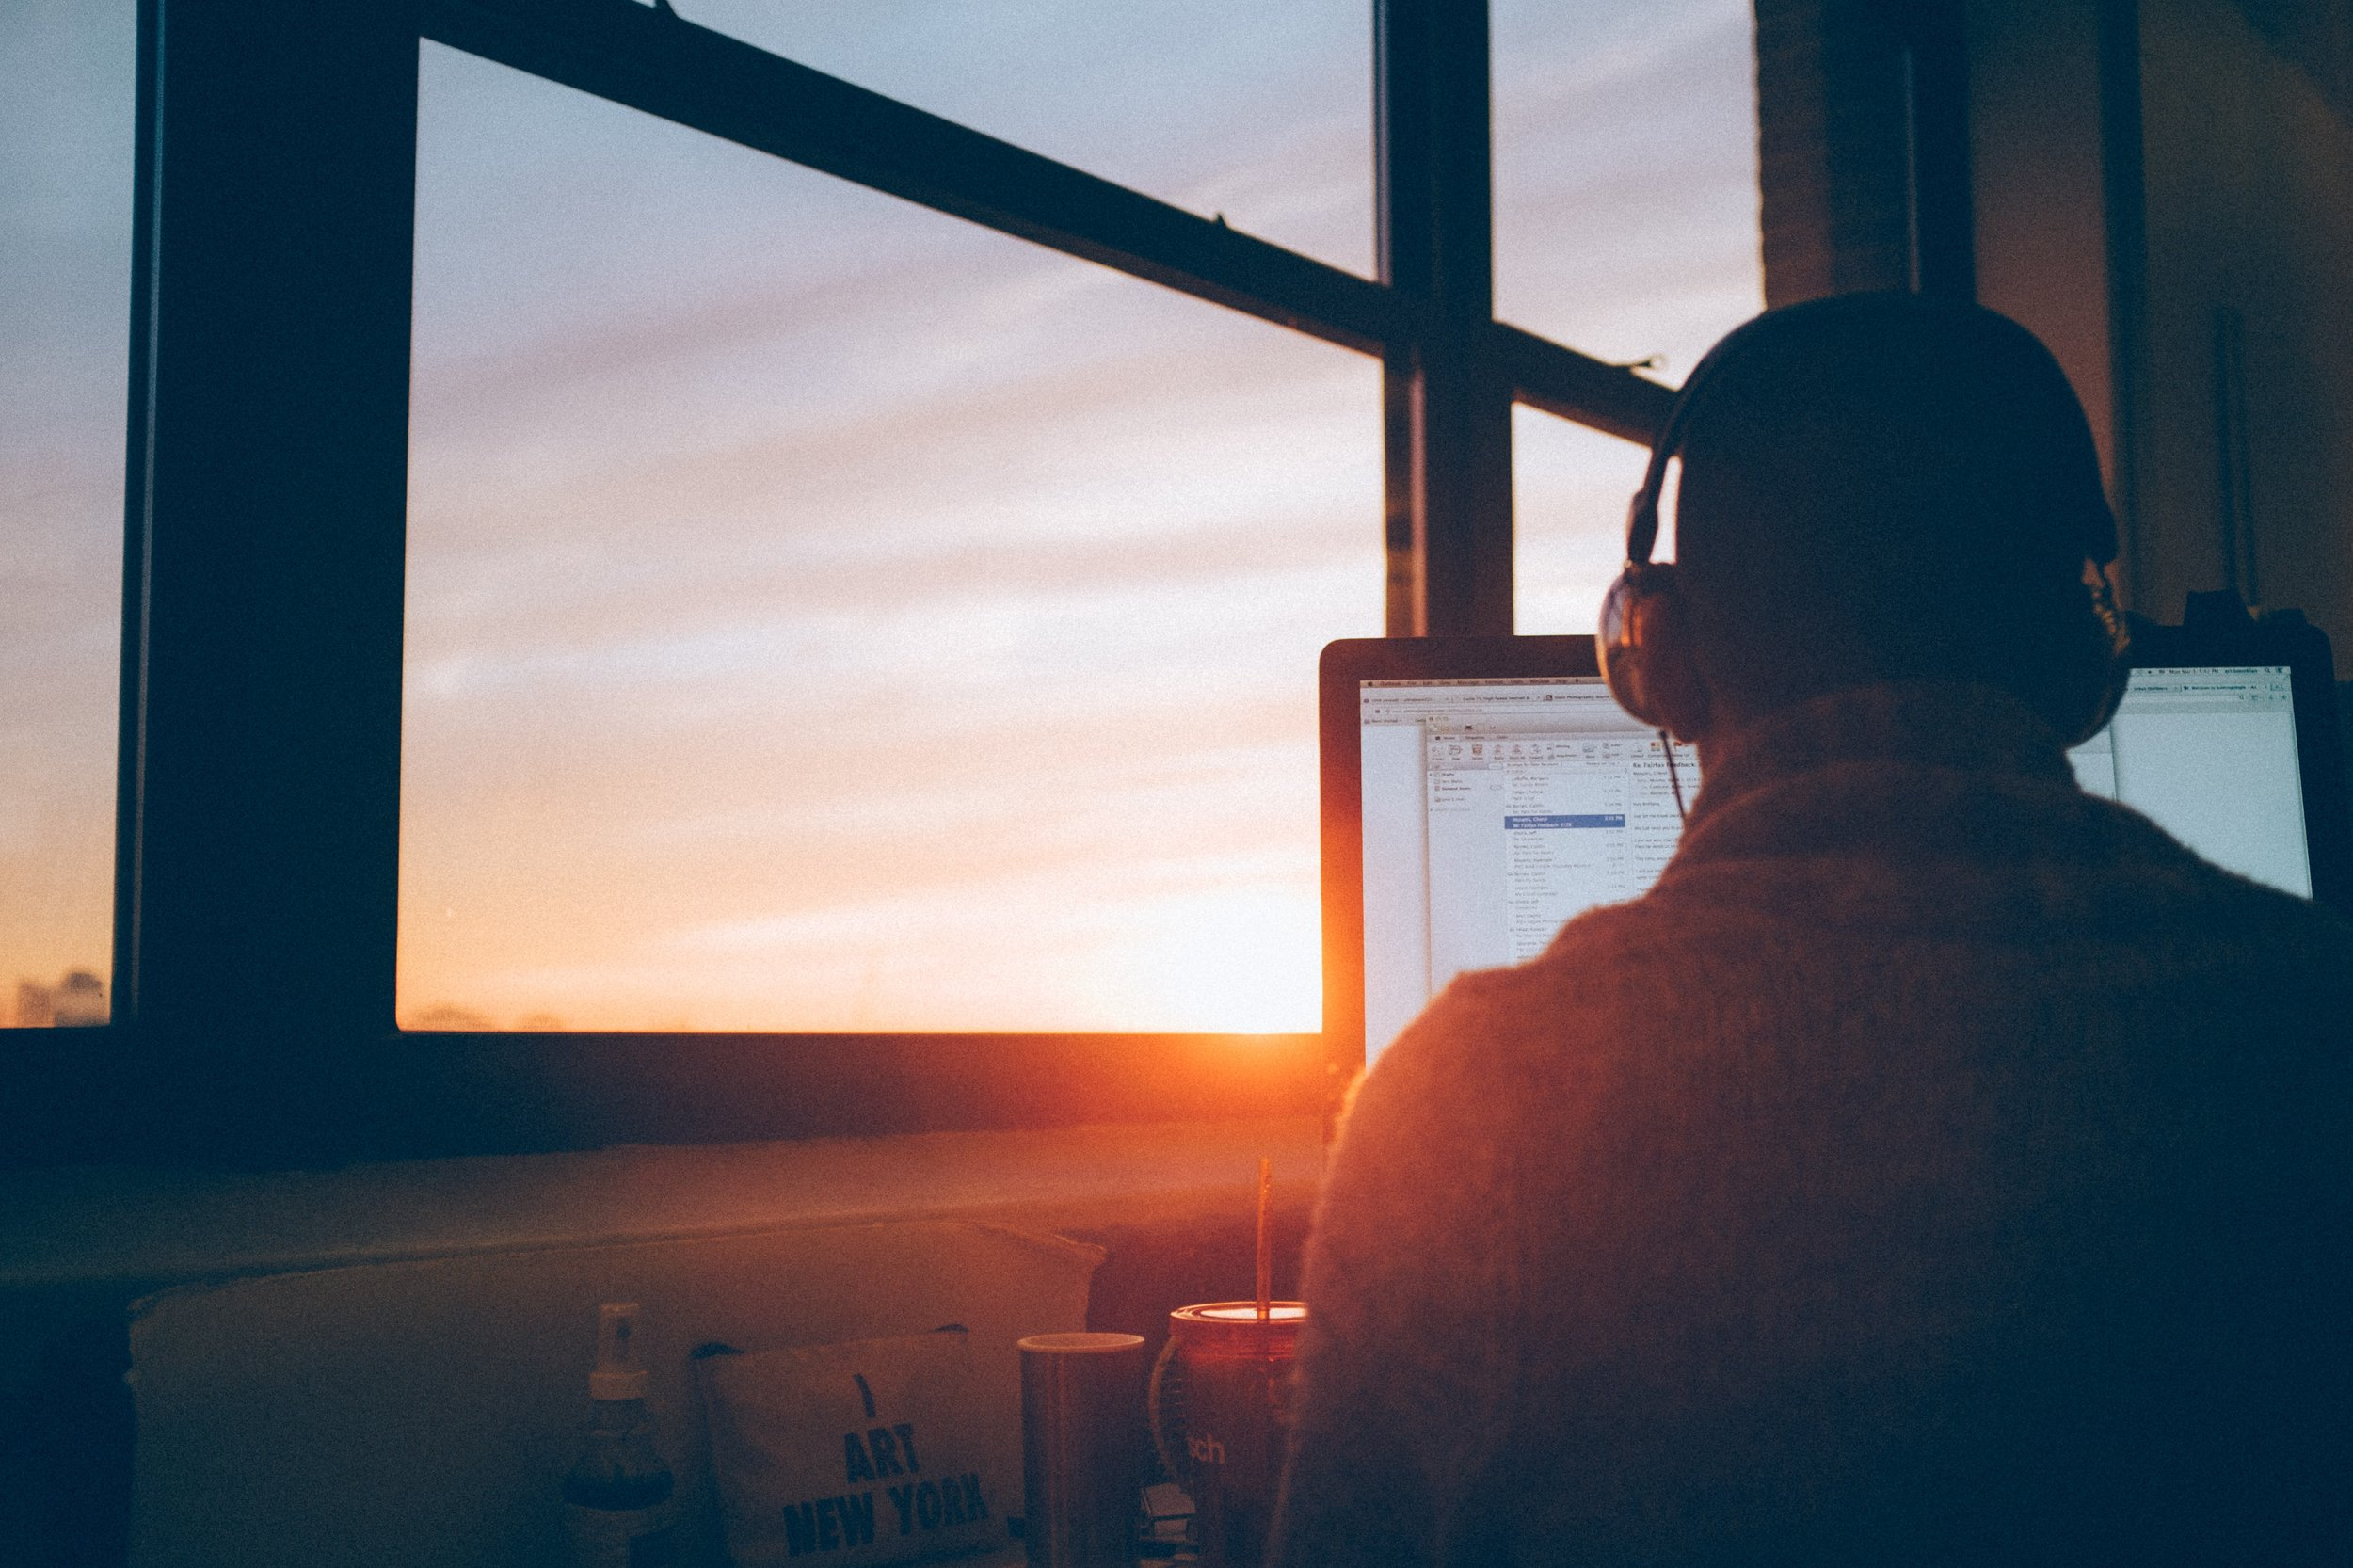 Want to increase productivity? Check out how motivational and inspirational this article can change the physical and mental being to maximize our morning routine and workday.